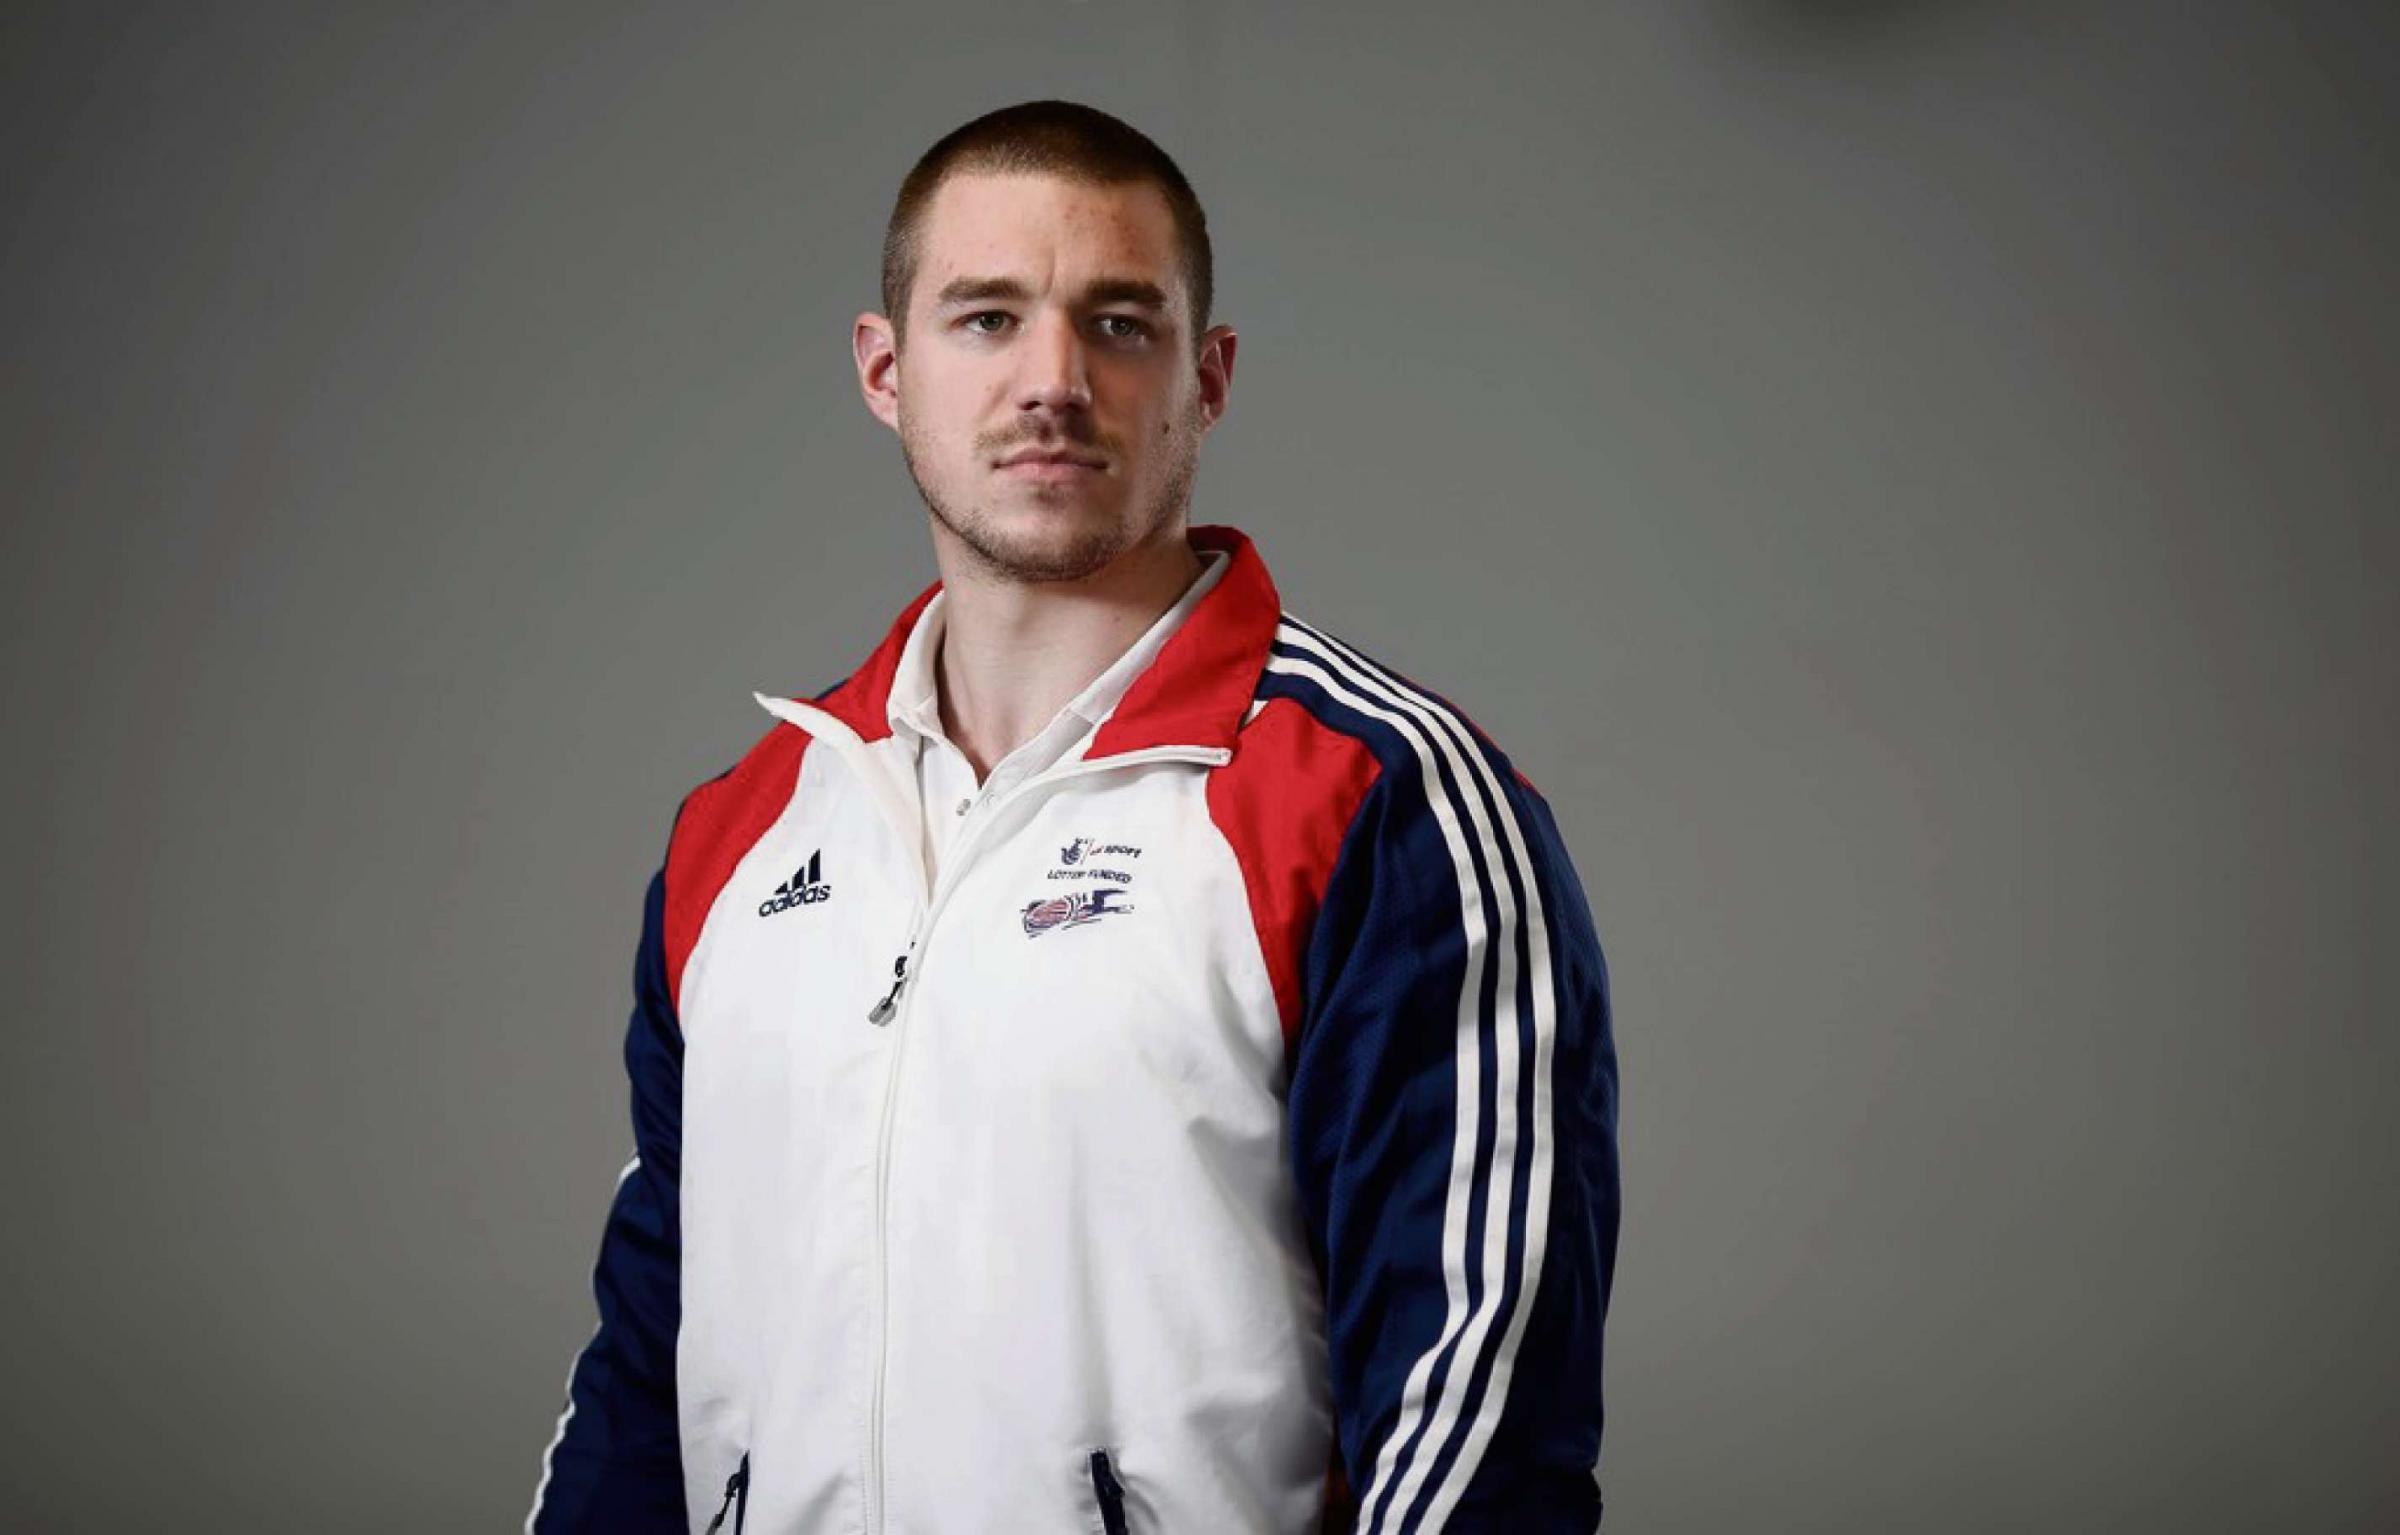 BOBSLEIGH TASK: Bruce Tasker is part of the GB bobsleigh quartet who believe they